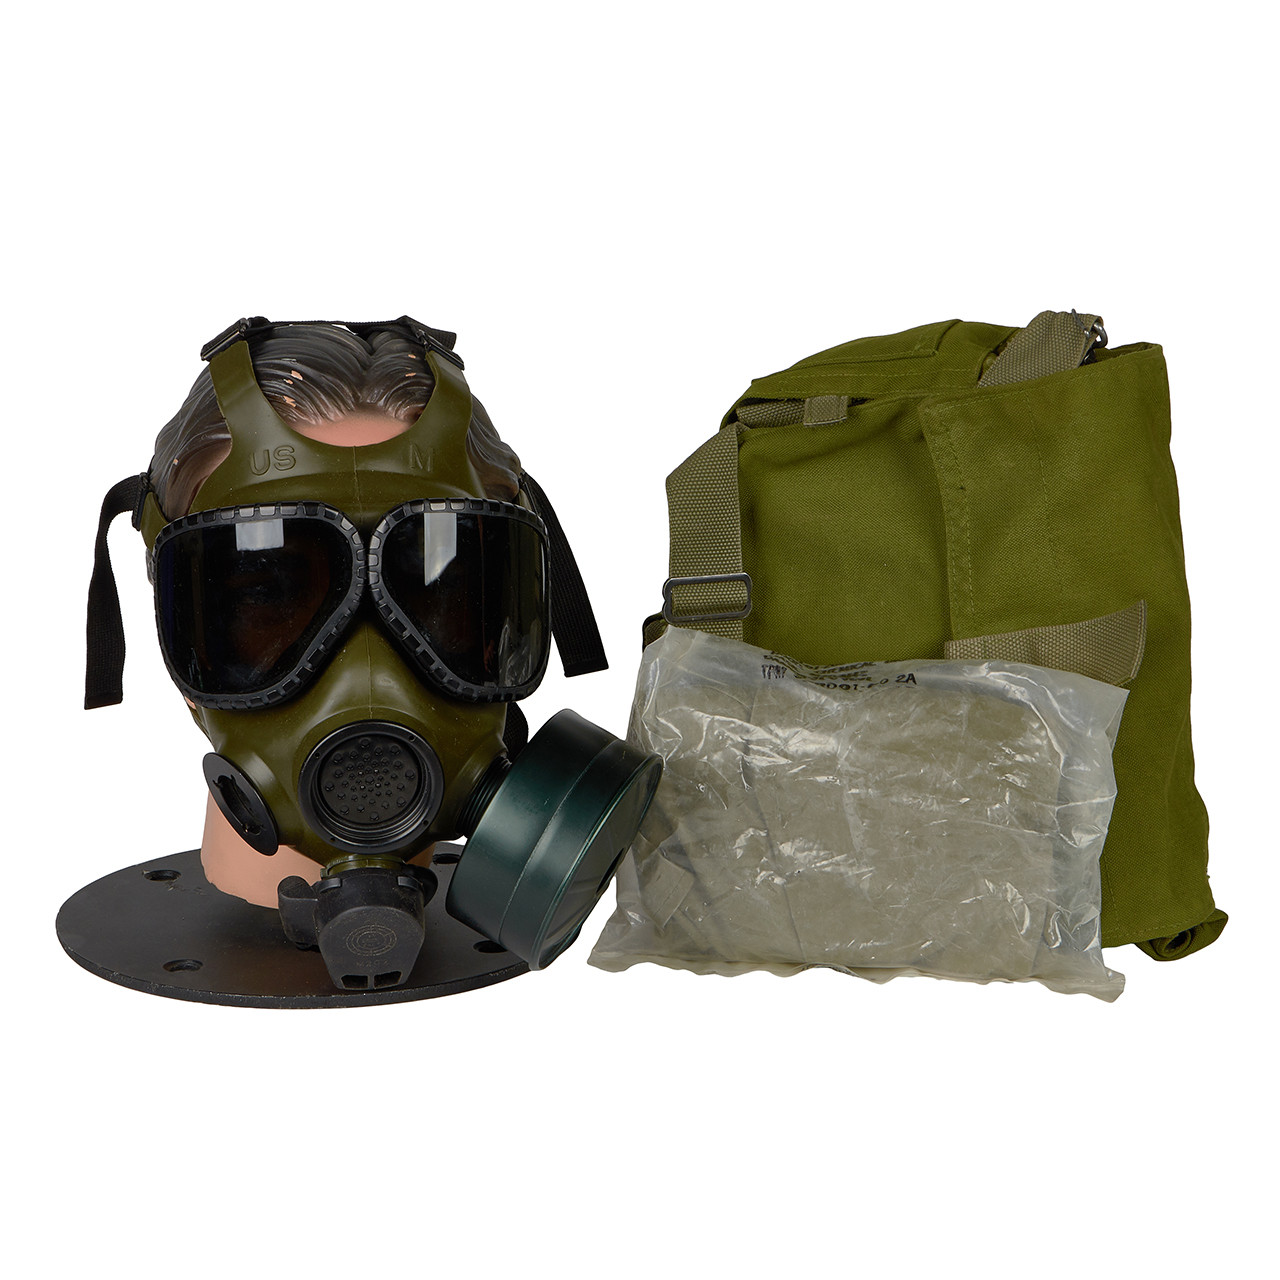 GM35 M40 SERIES G.I. ISSUE GAS MASK